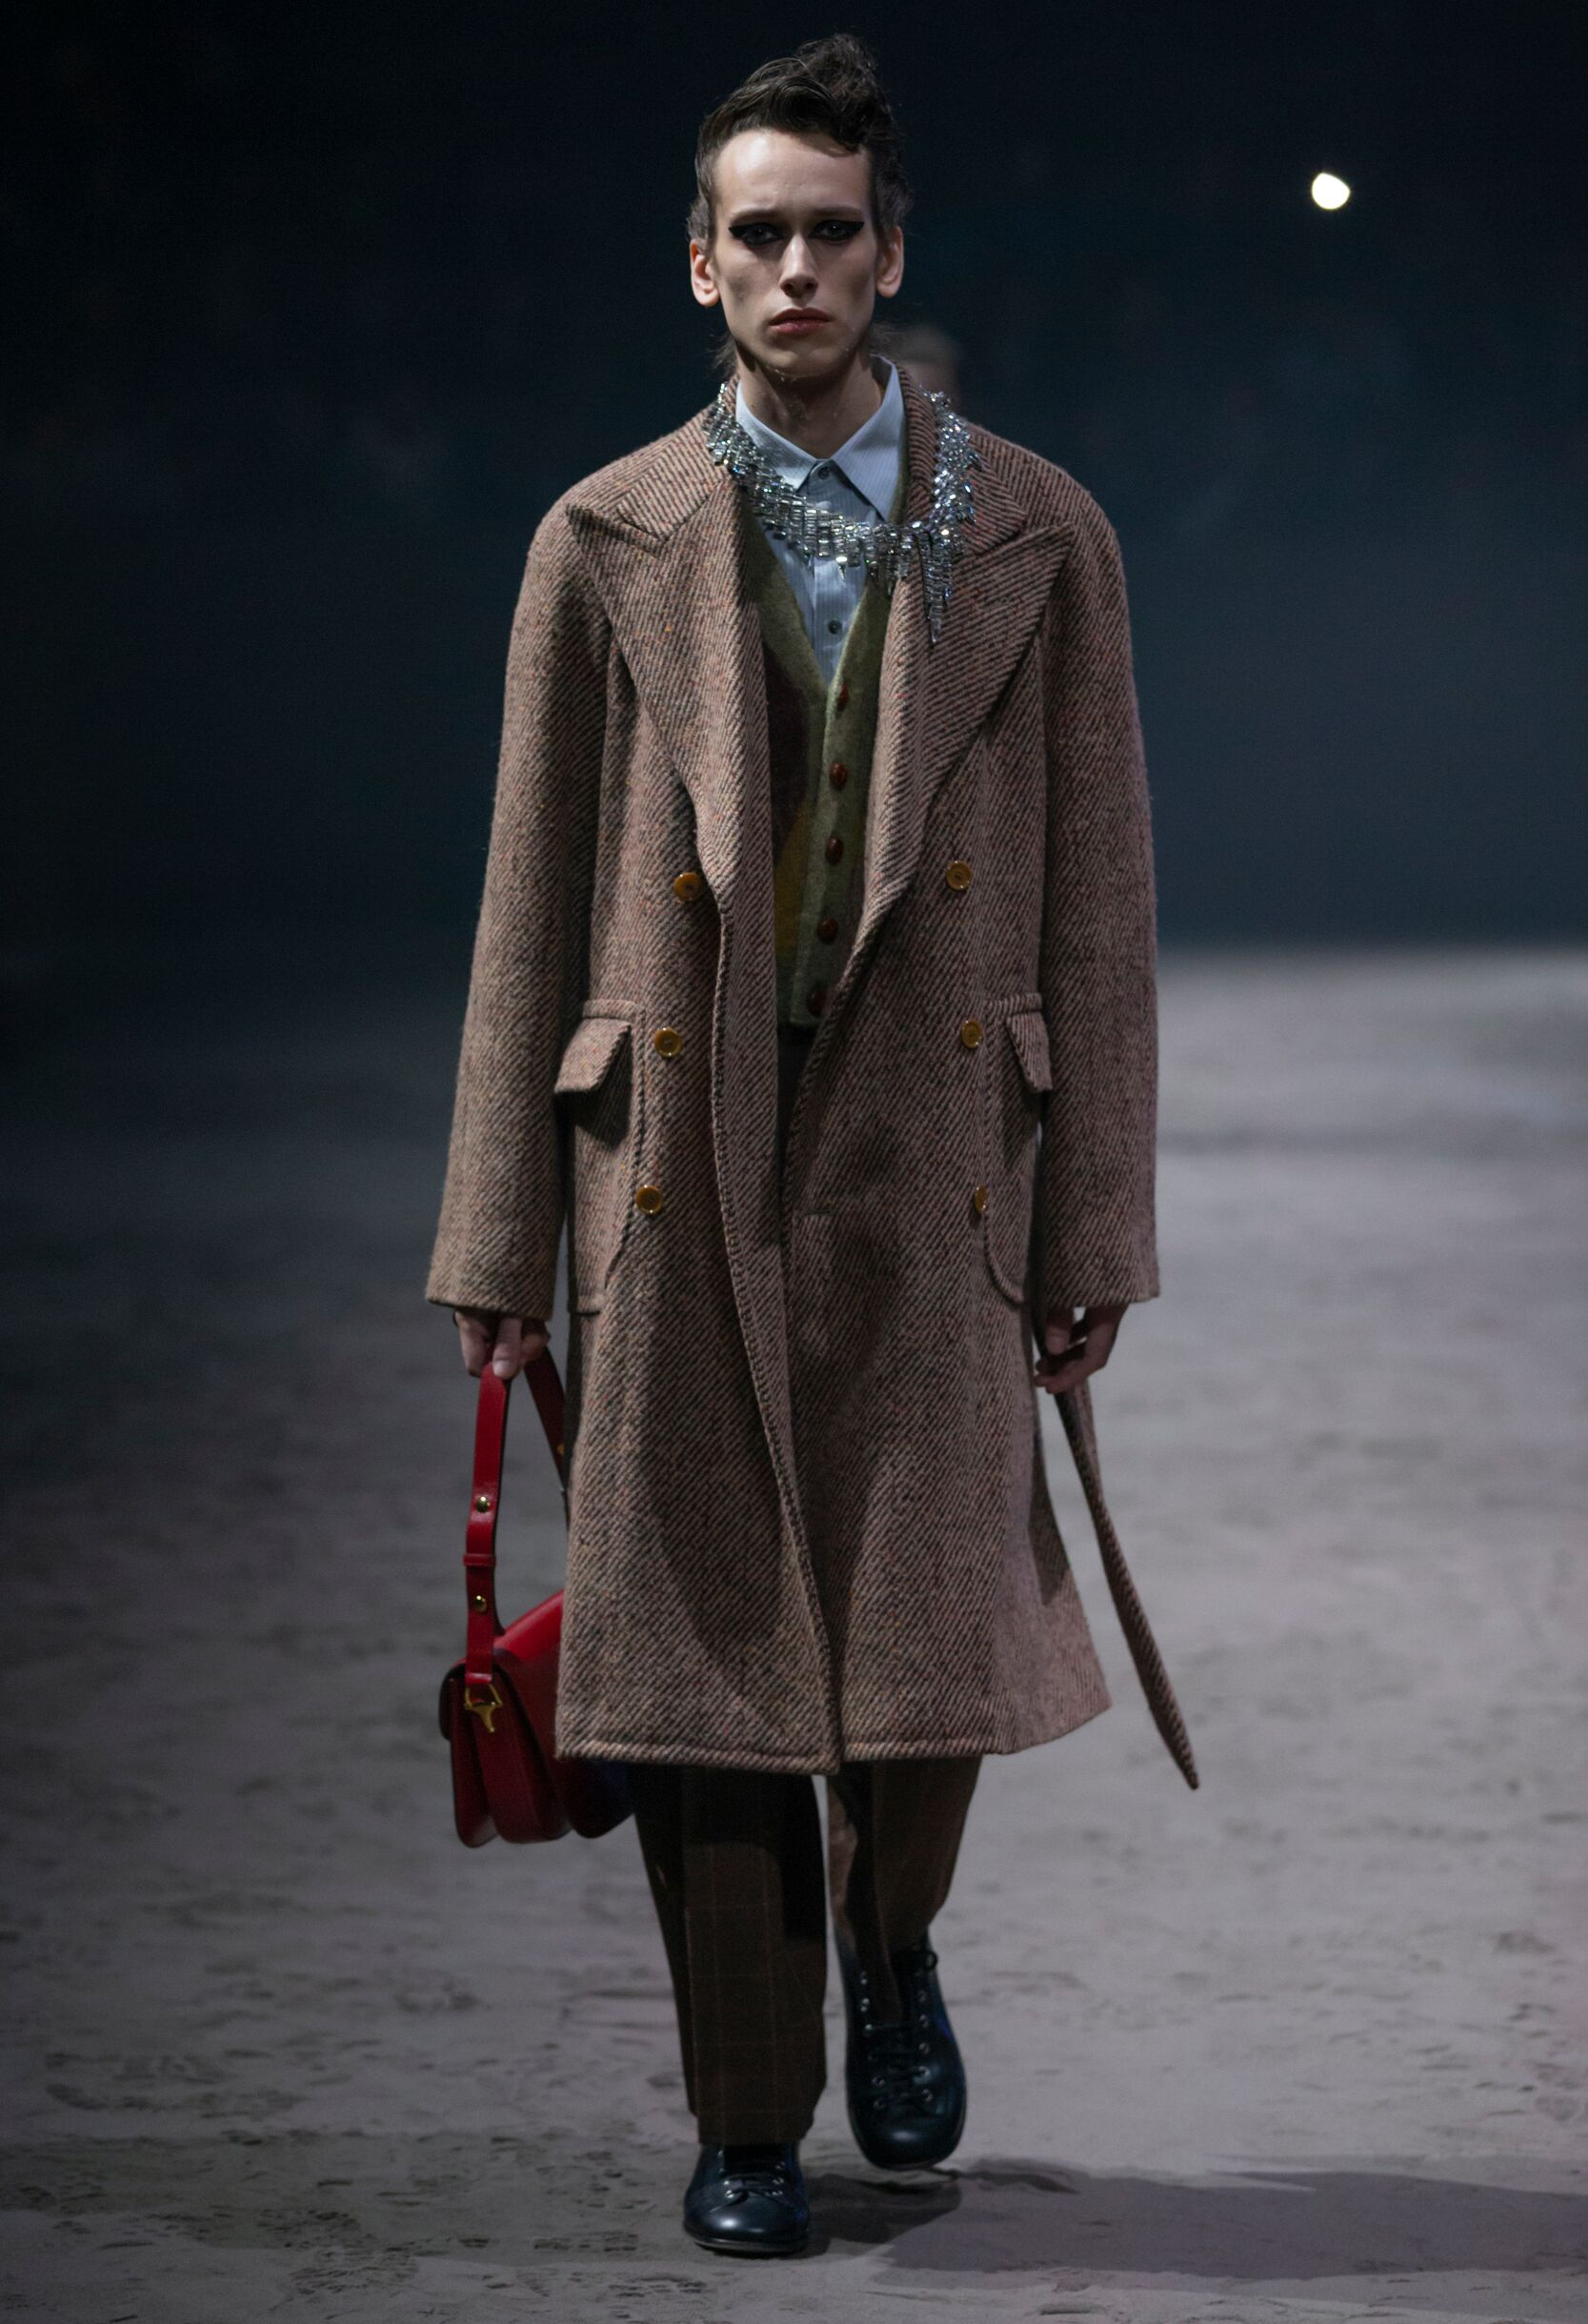 GUCCI FALL WINTER 2020 MEN U2019S COLLECTION The Skinny Beep